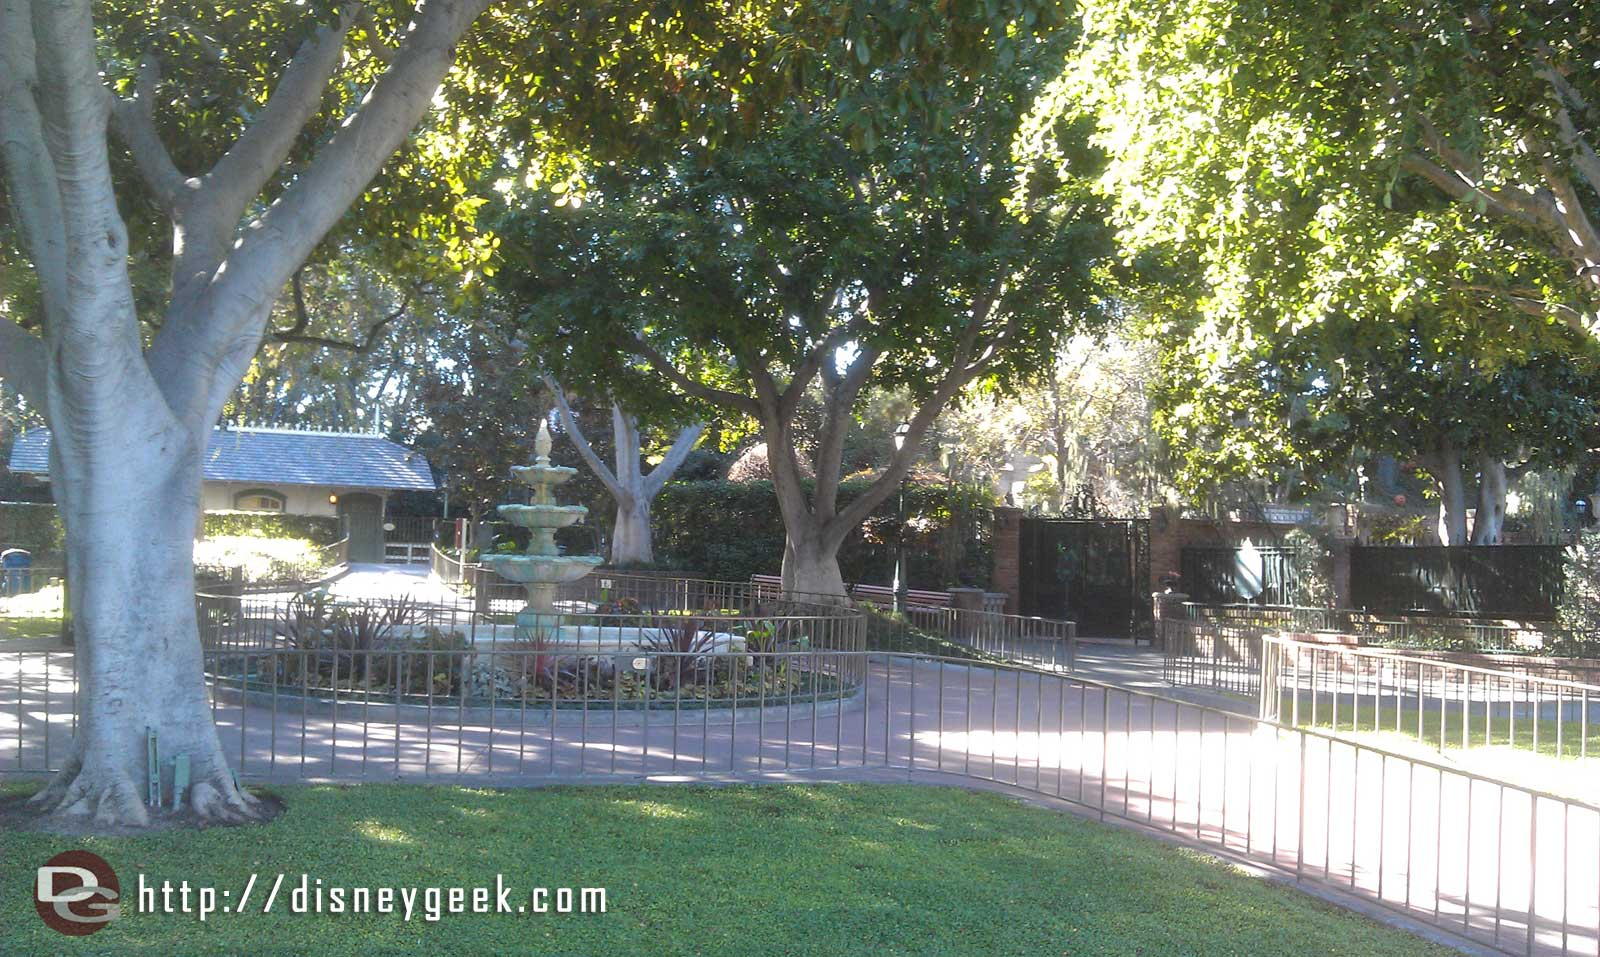 So nice to walk through the park without the crowds..  nice and quiet out by Haunted Mansion, which is closed